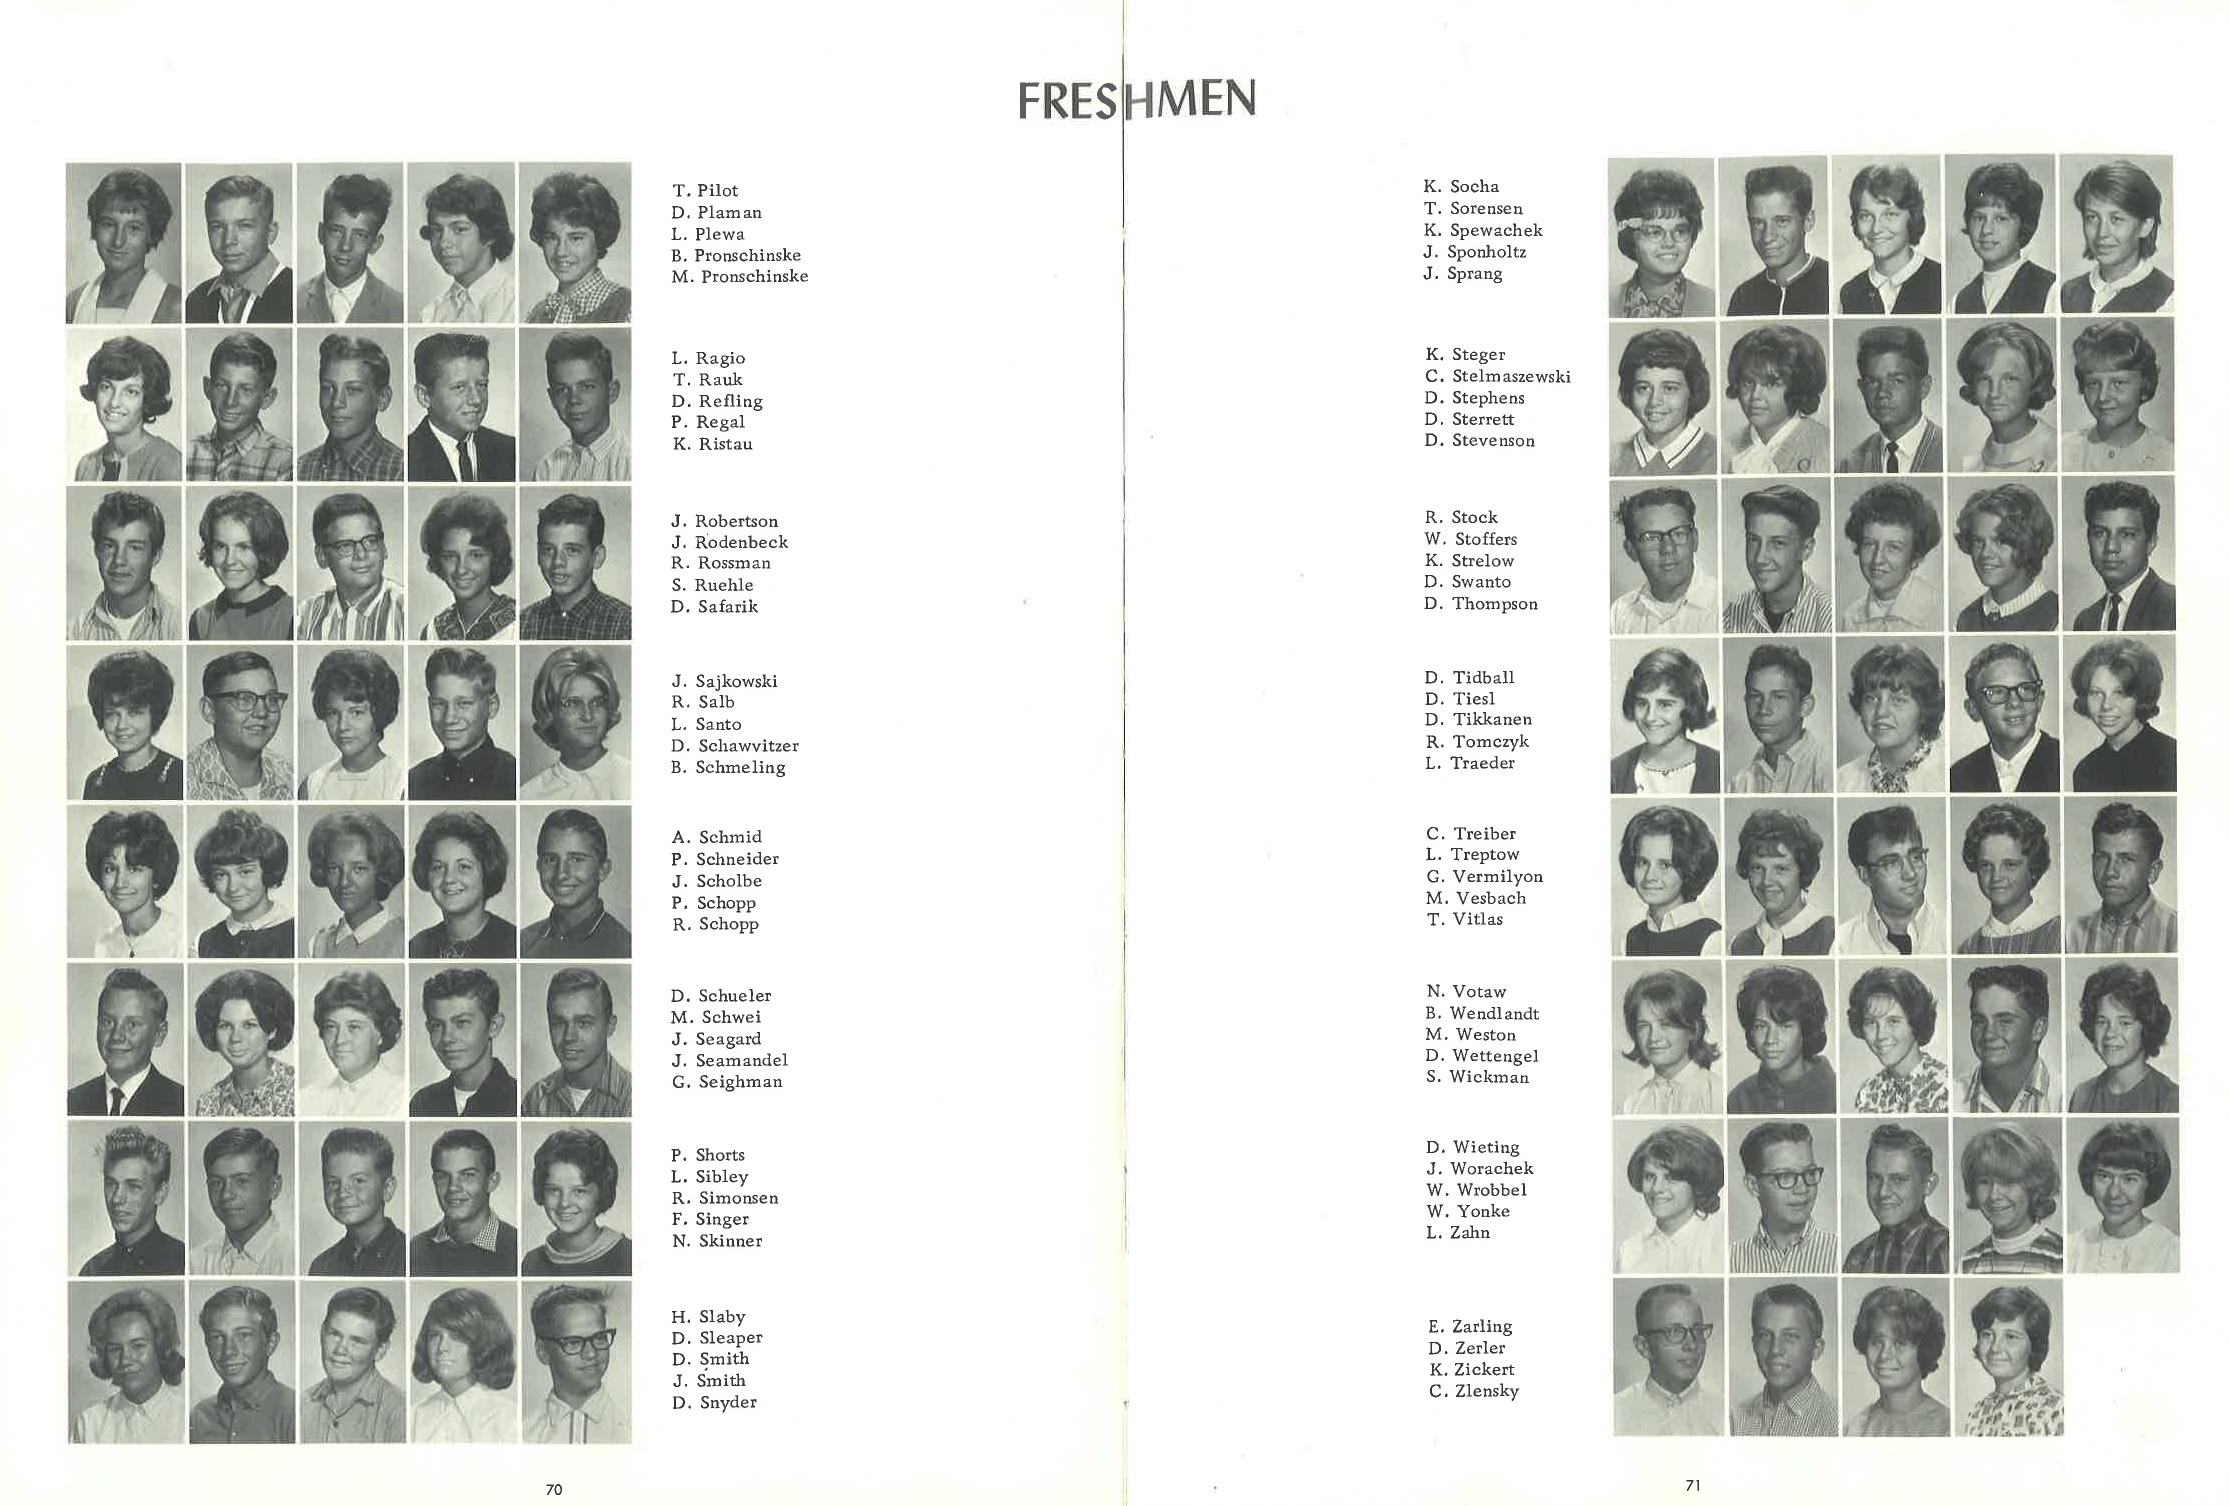 1965_Yearbook_36.jpg